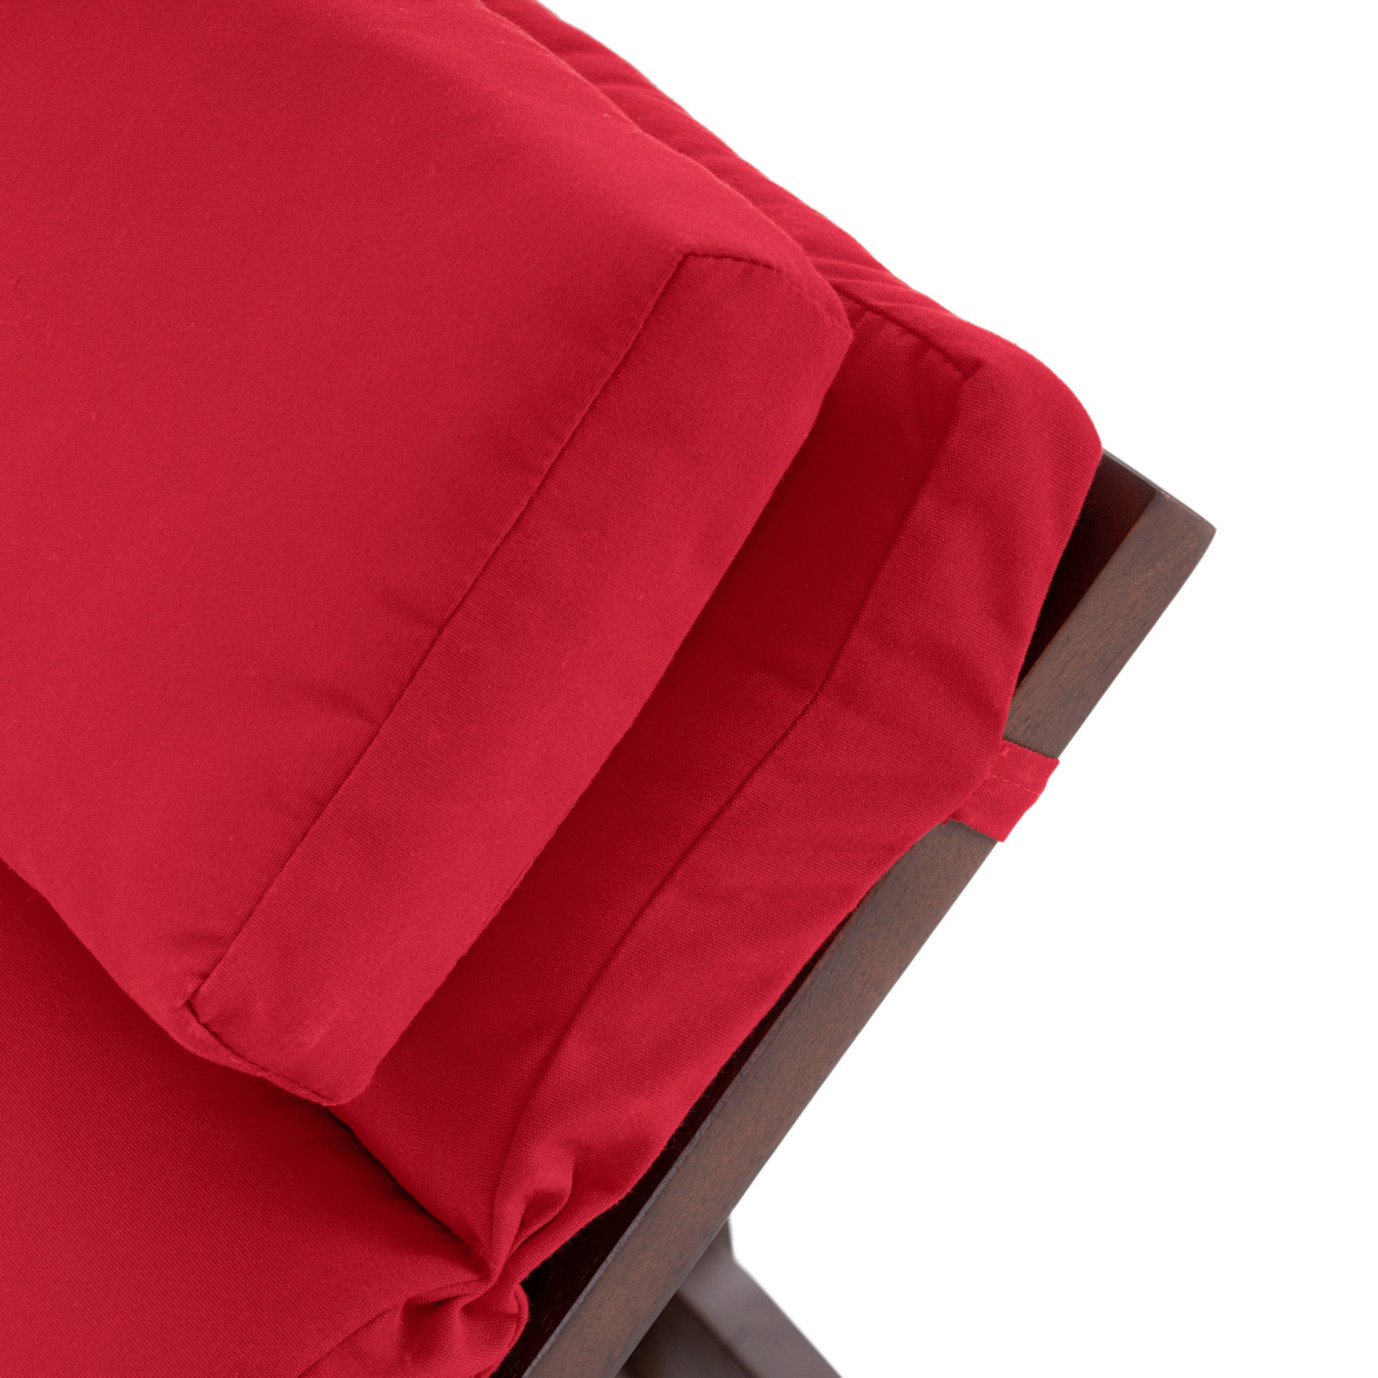 Vaughn Chaise Lounges - Sunset Red